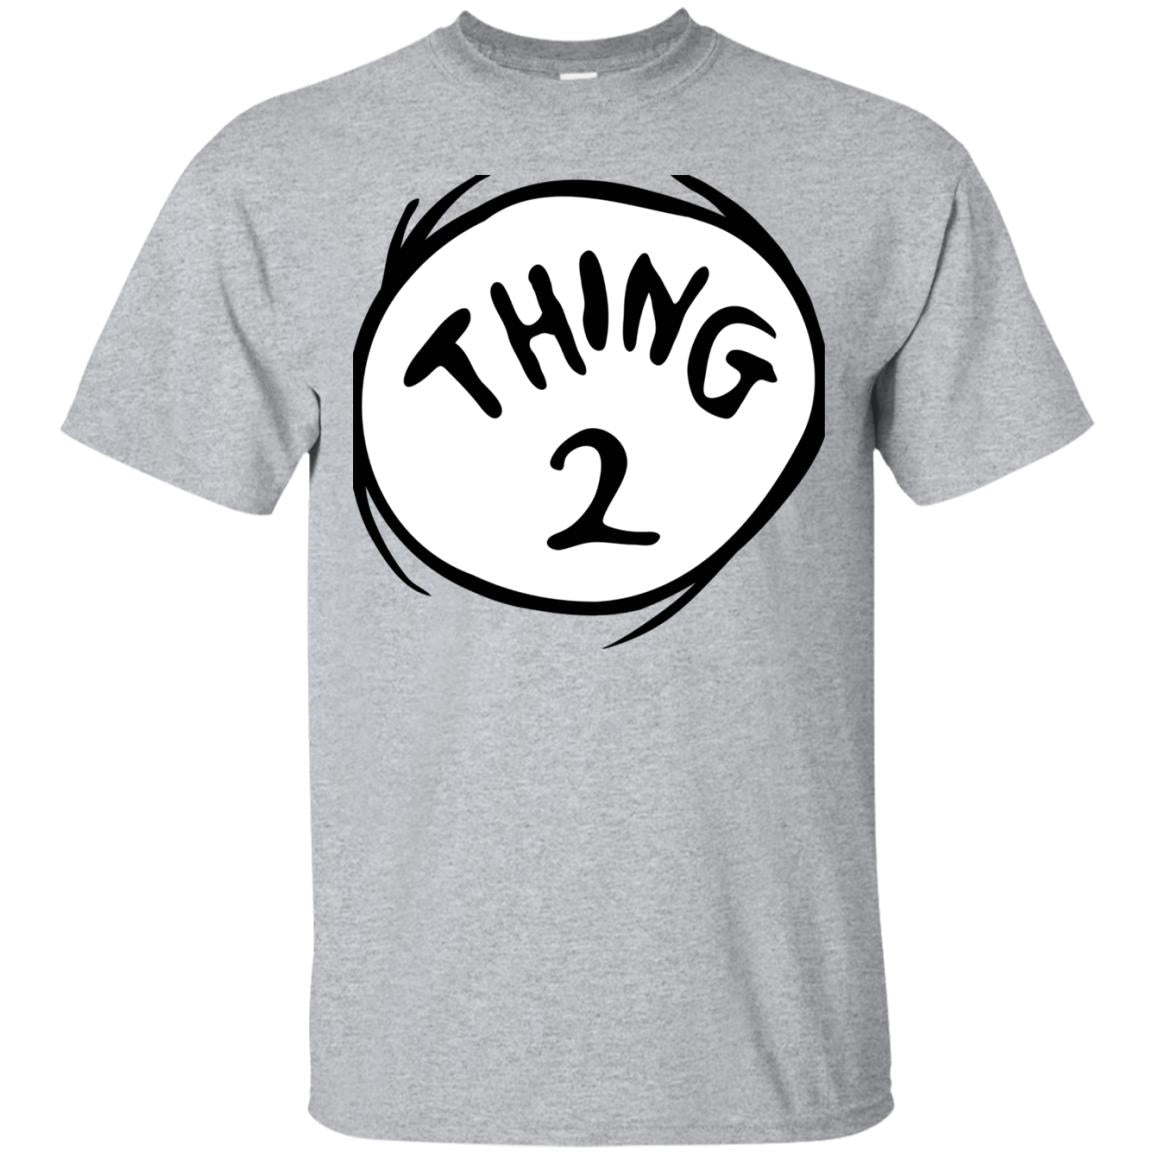 Dr. Seuss Thing 2 Emblem T-shirt 99promocode